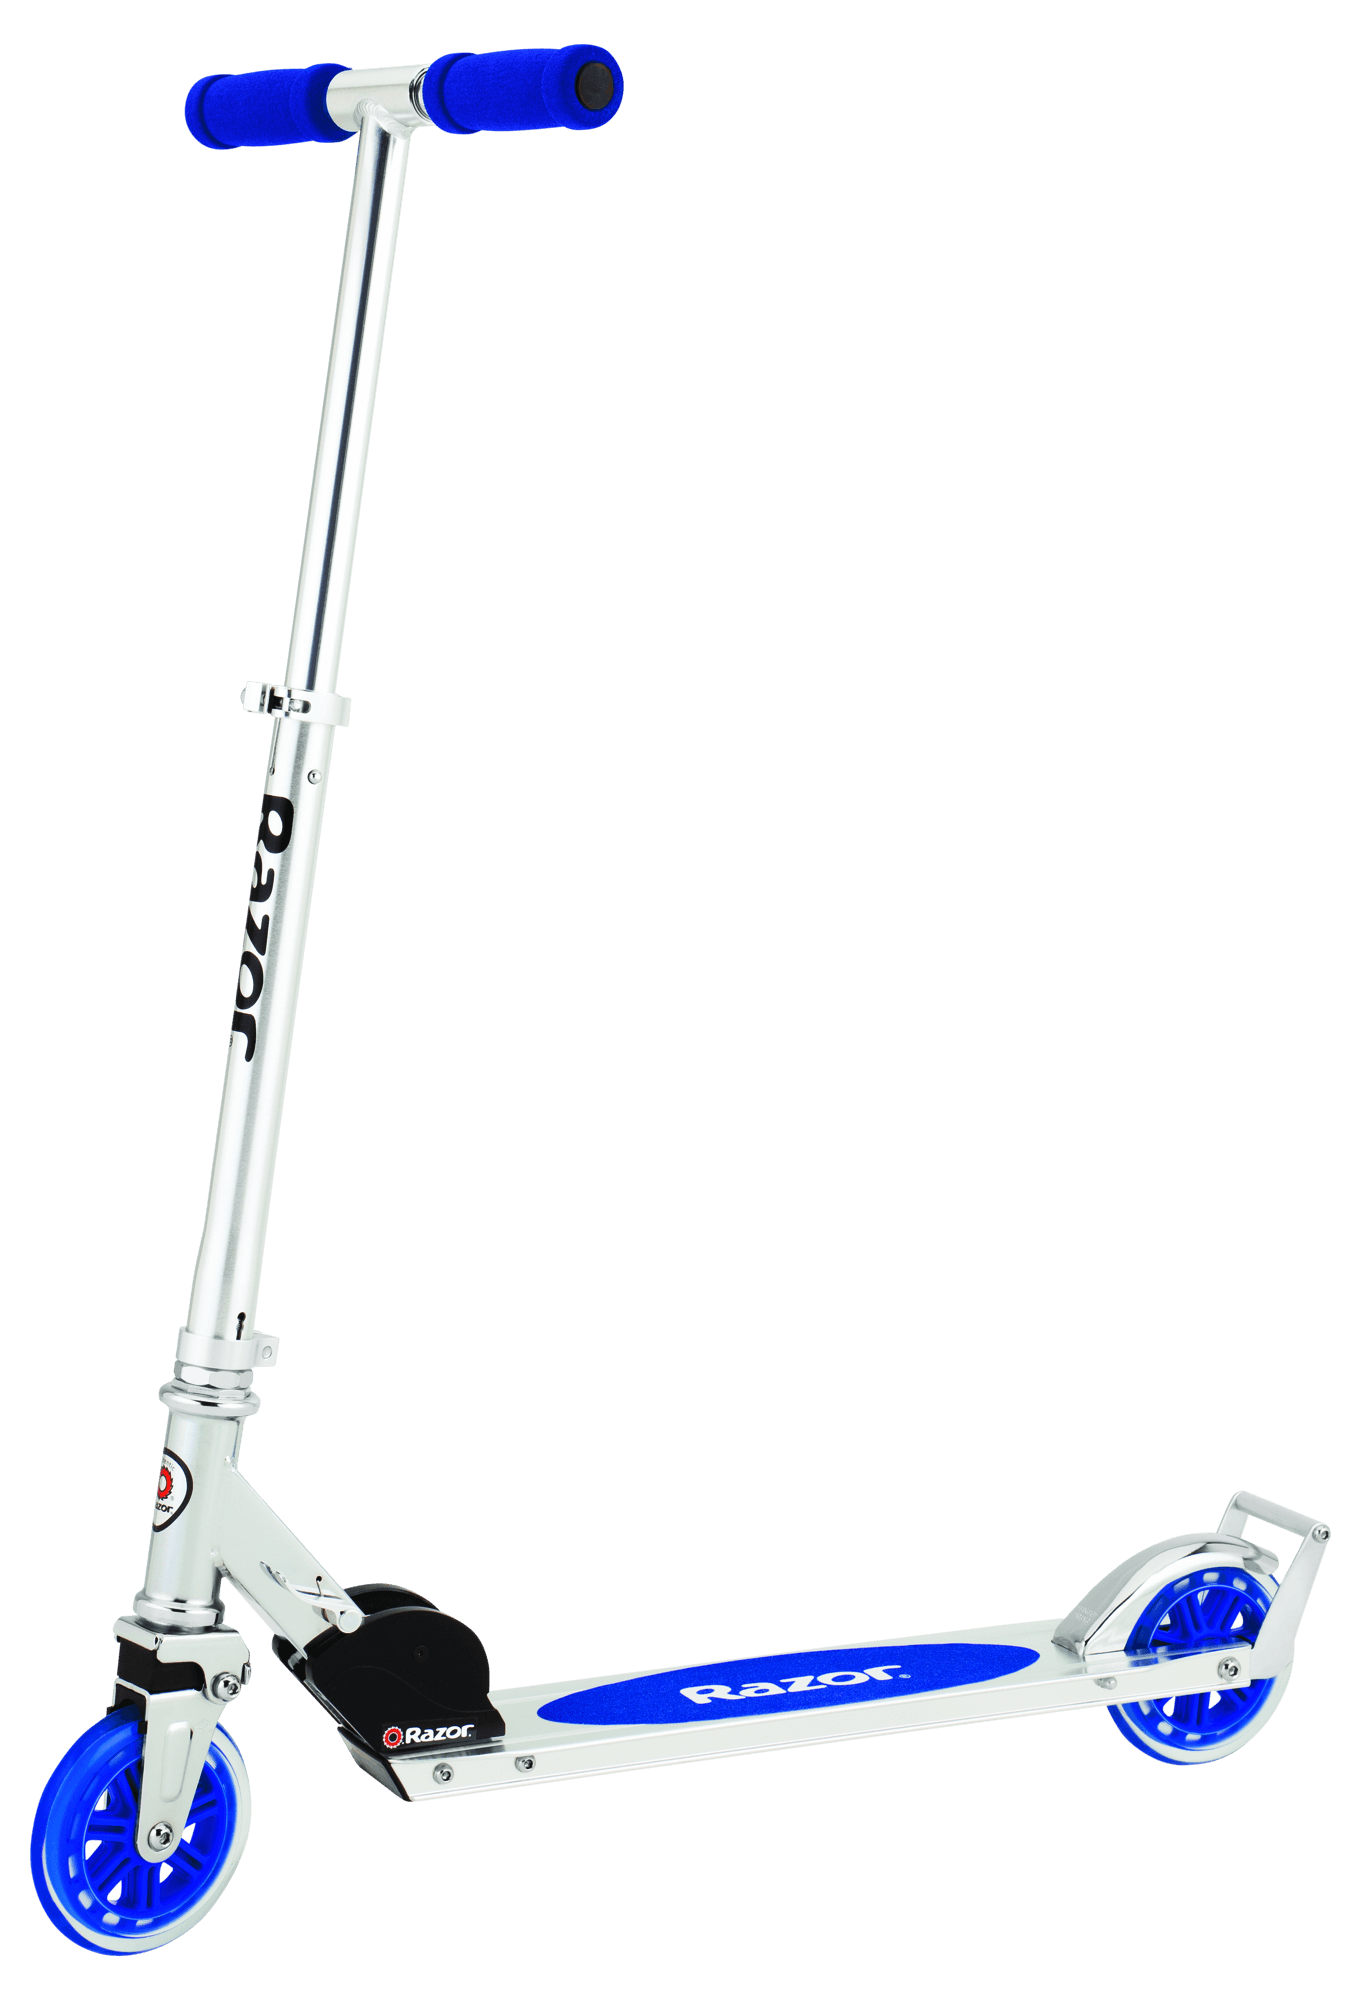 17 Off Gotrax Gxl V2 Commuting Electric Scooter 8 5 Air Filled Tires 15 5mph 9 12 Mile Range Electric Scooter Scooter Electricity